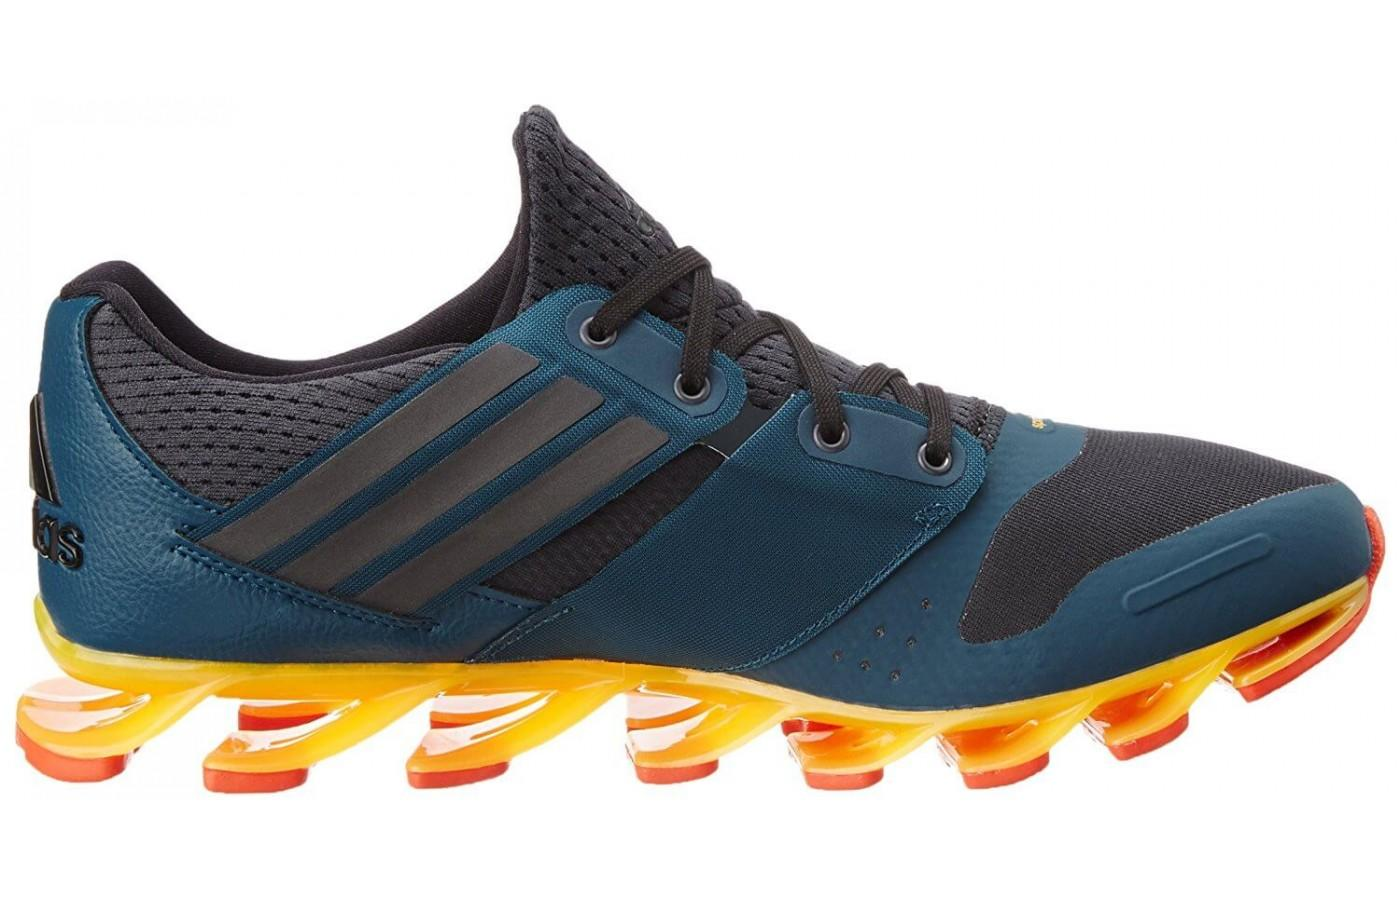 Unique outsole engineering of the Adidas Springblade solyce